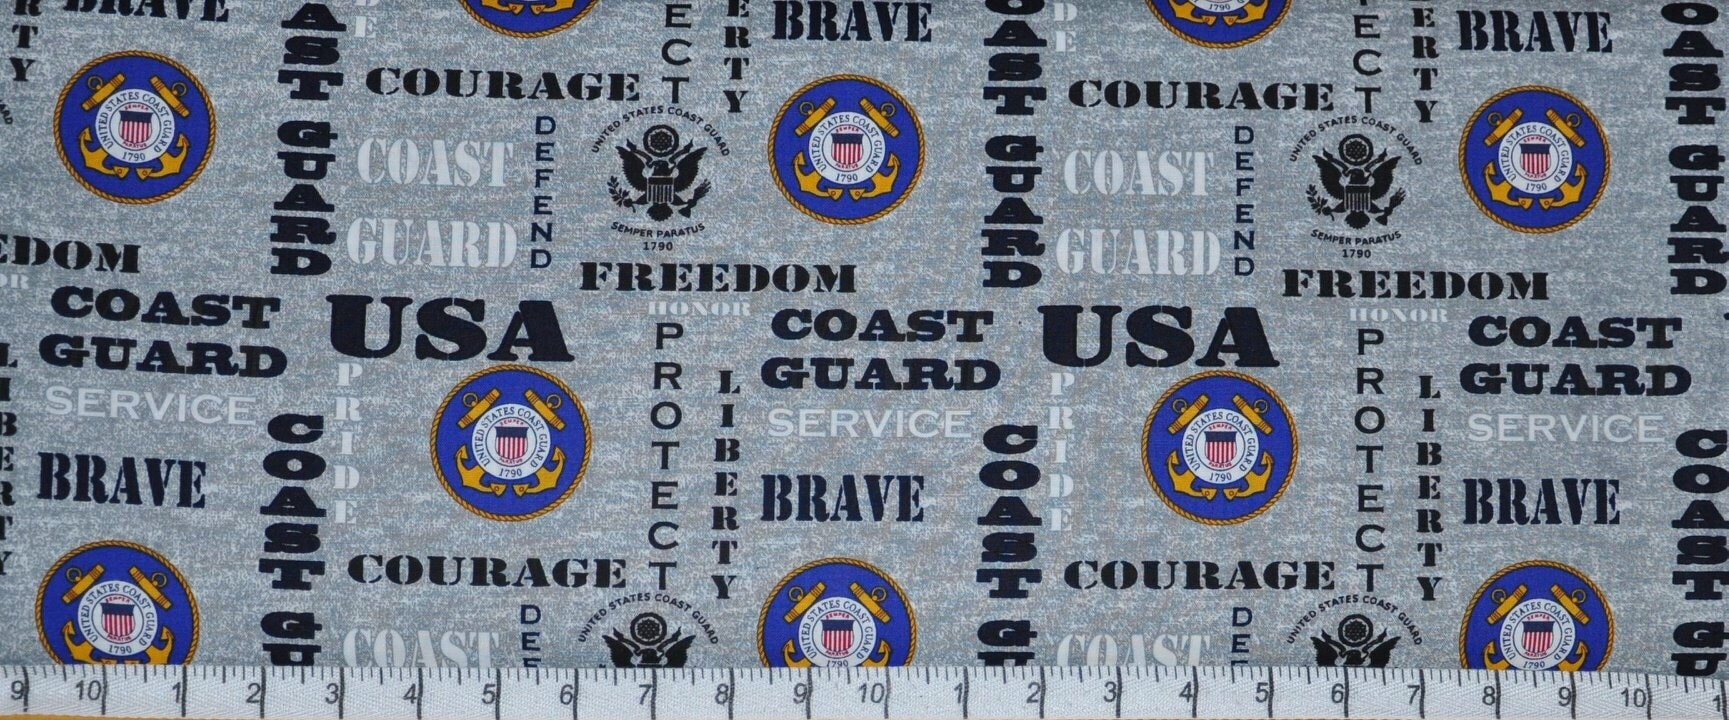 United States Coast Guard Collage Print by Sykel Enterprises-BTY-Protect /& Serve